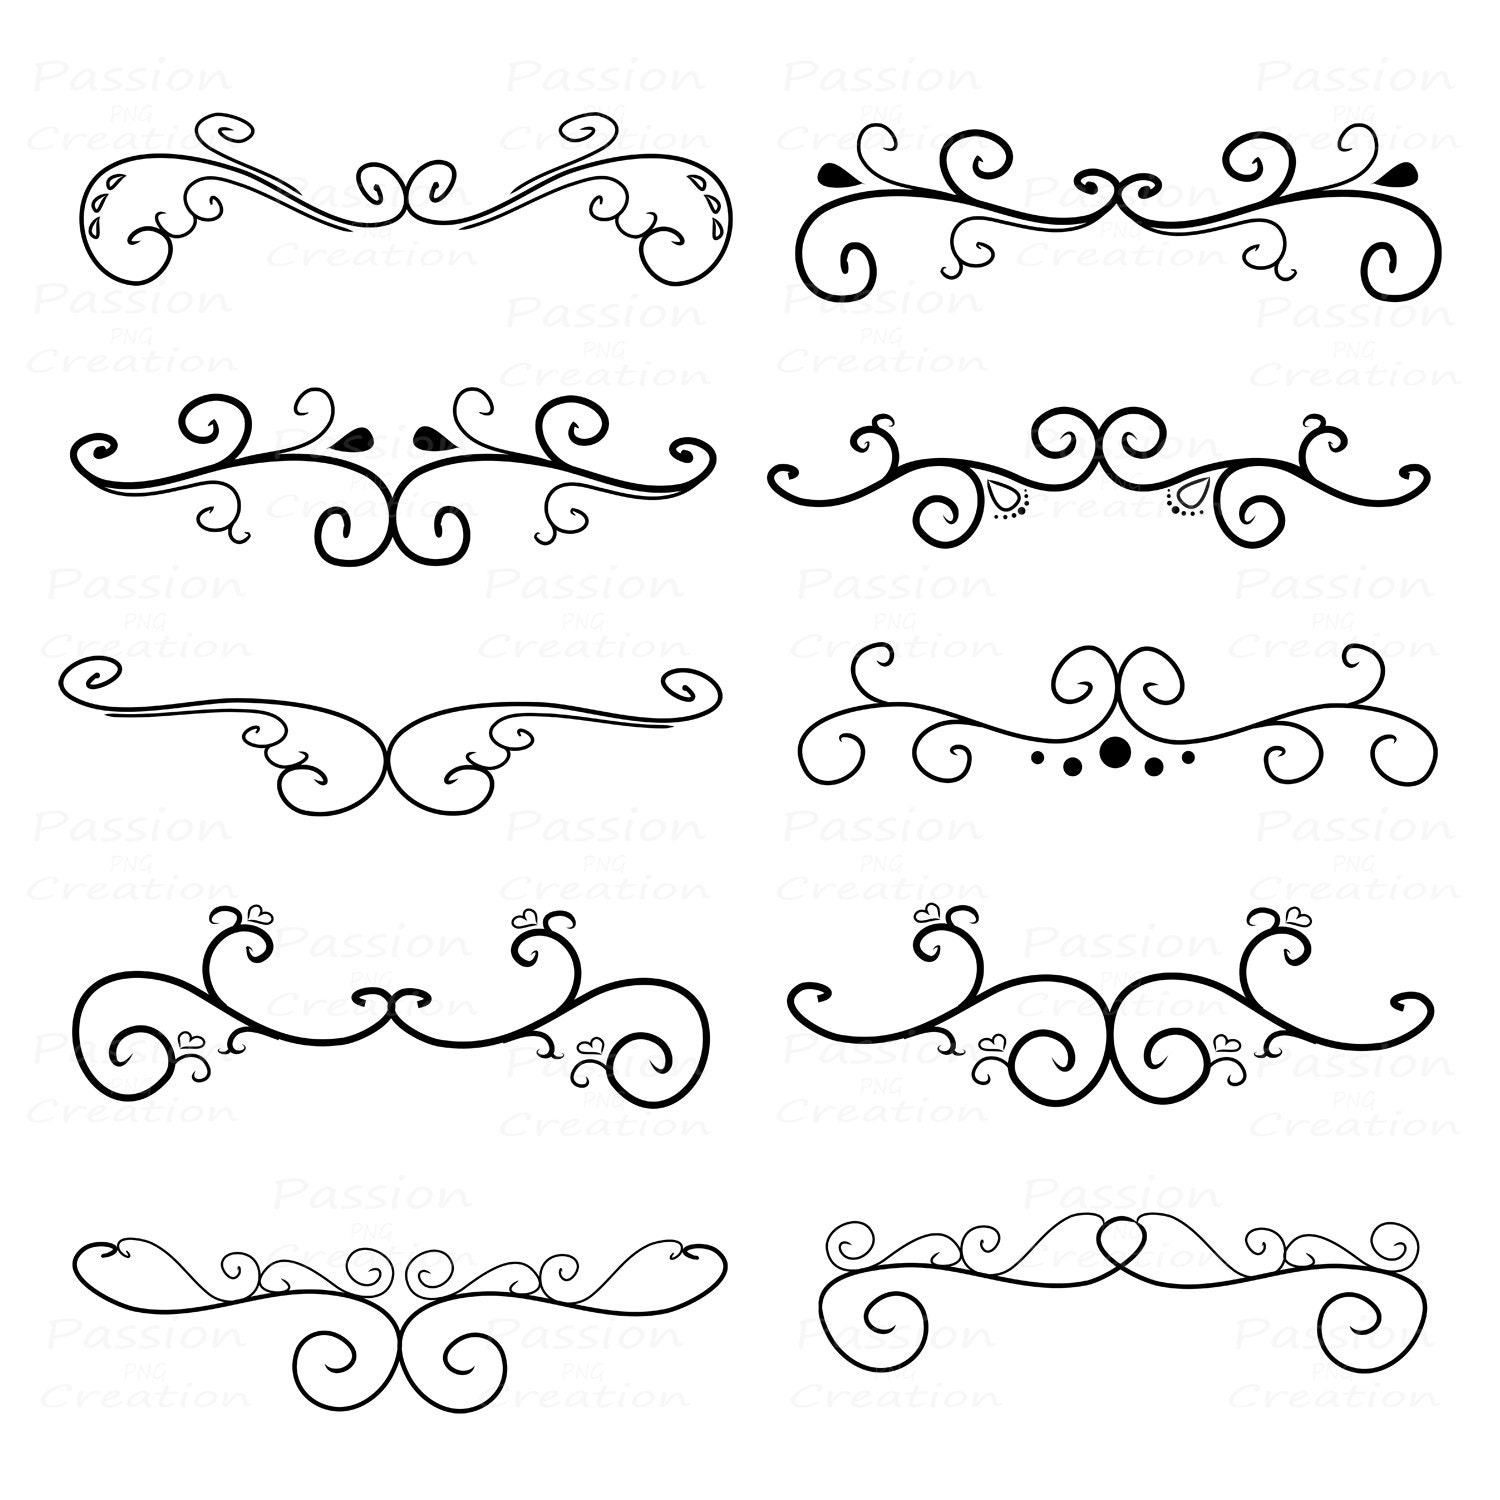 Flourish Swirls Border Calligraphy Decorative